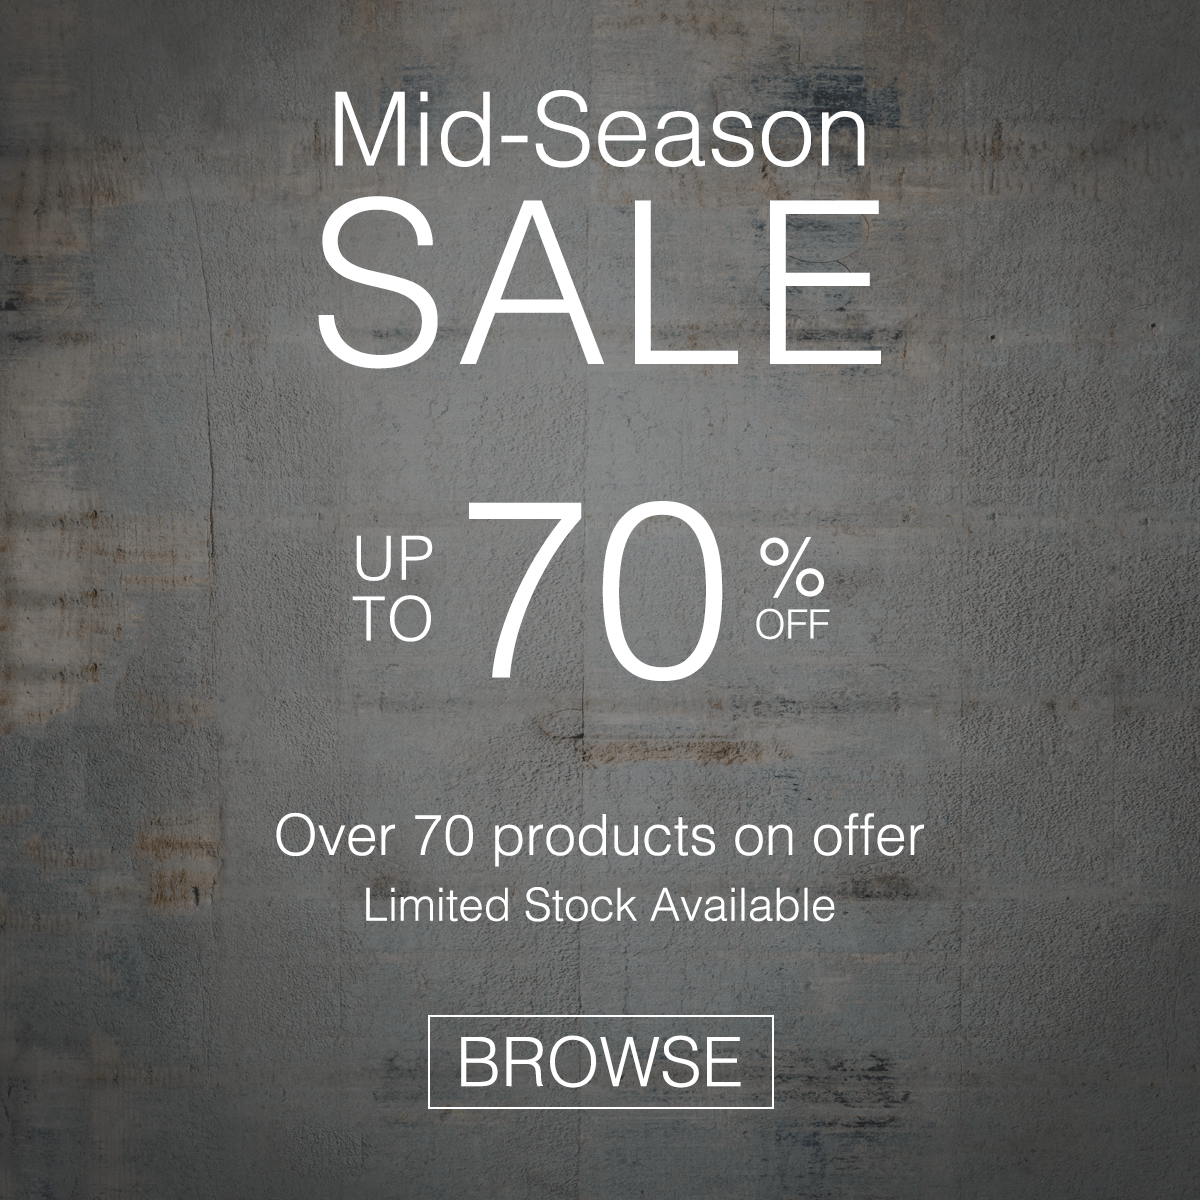 Mid-Season SALE - Up to 70% off